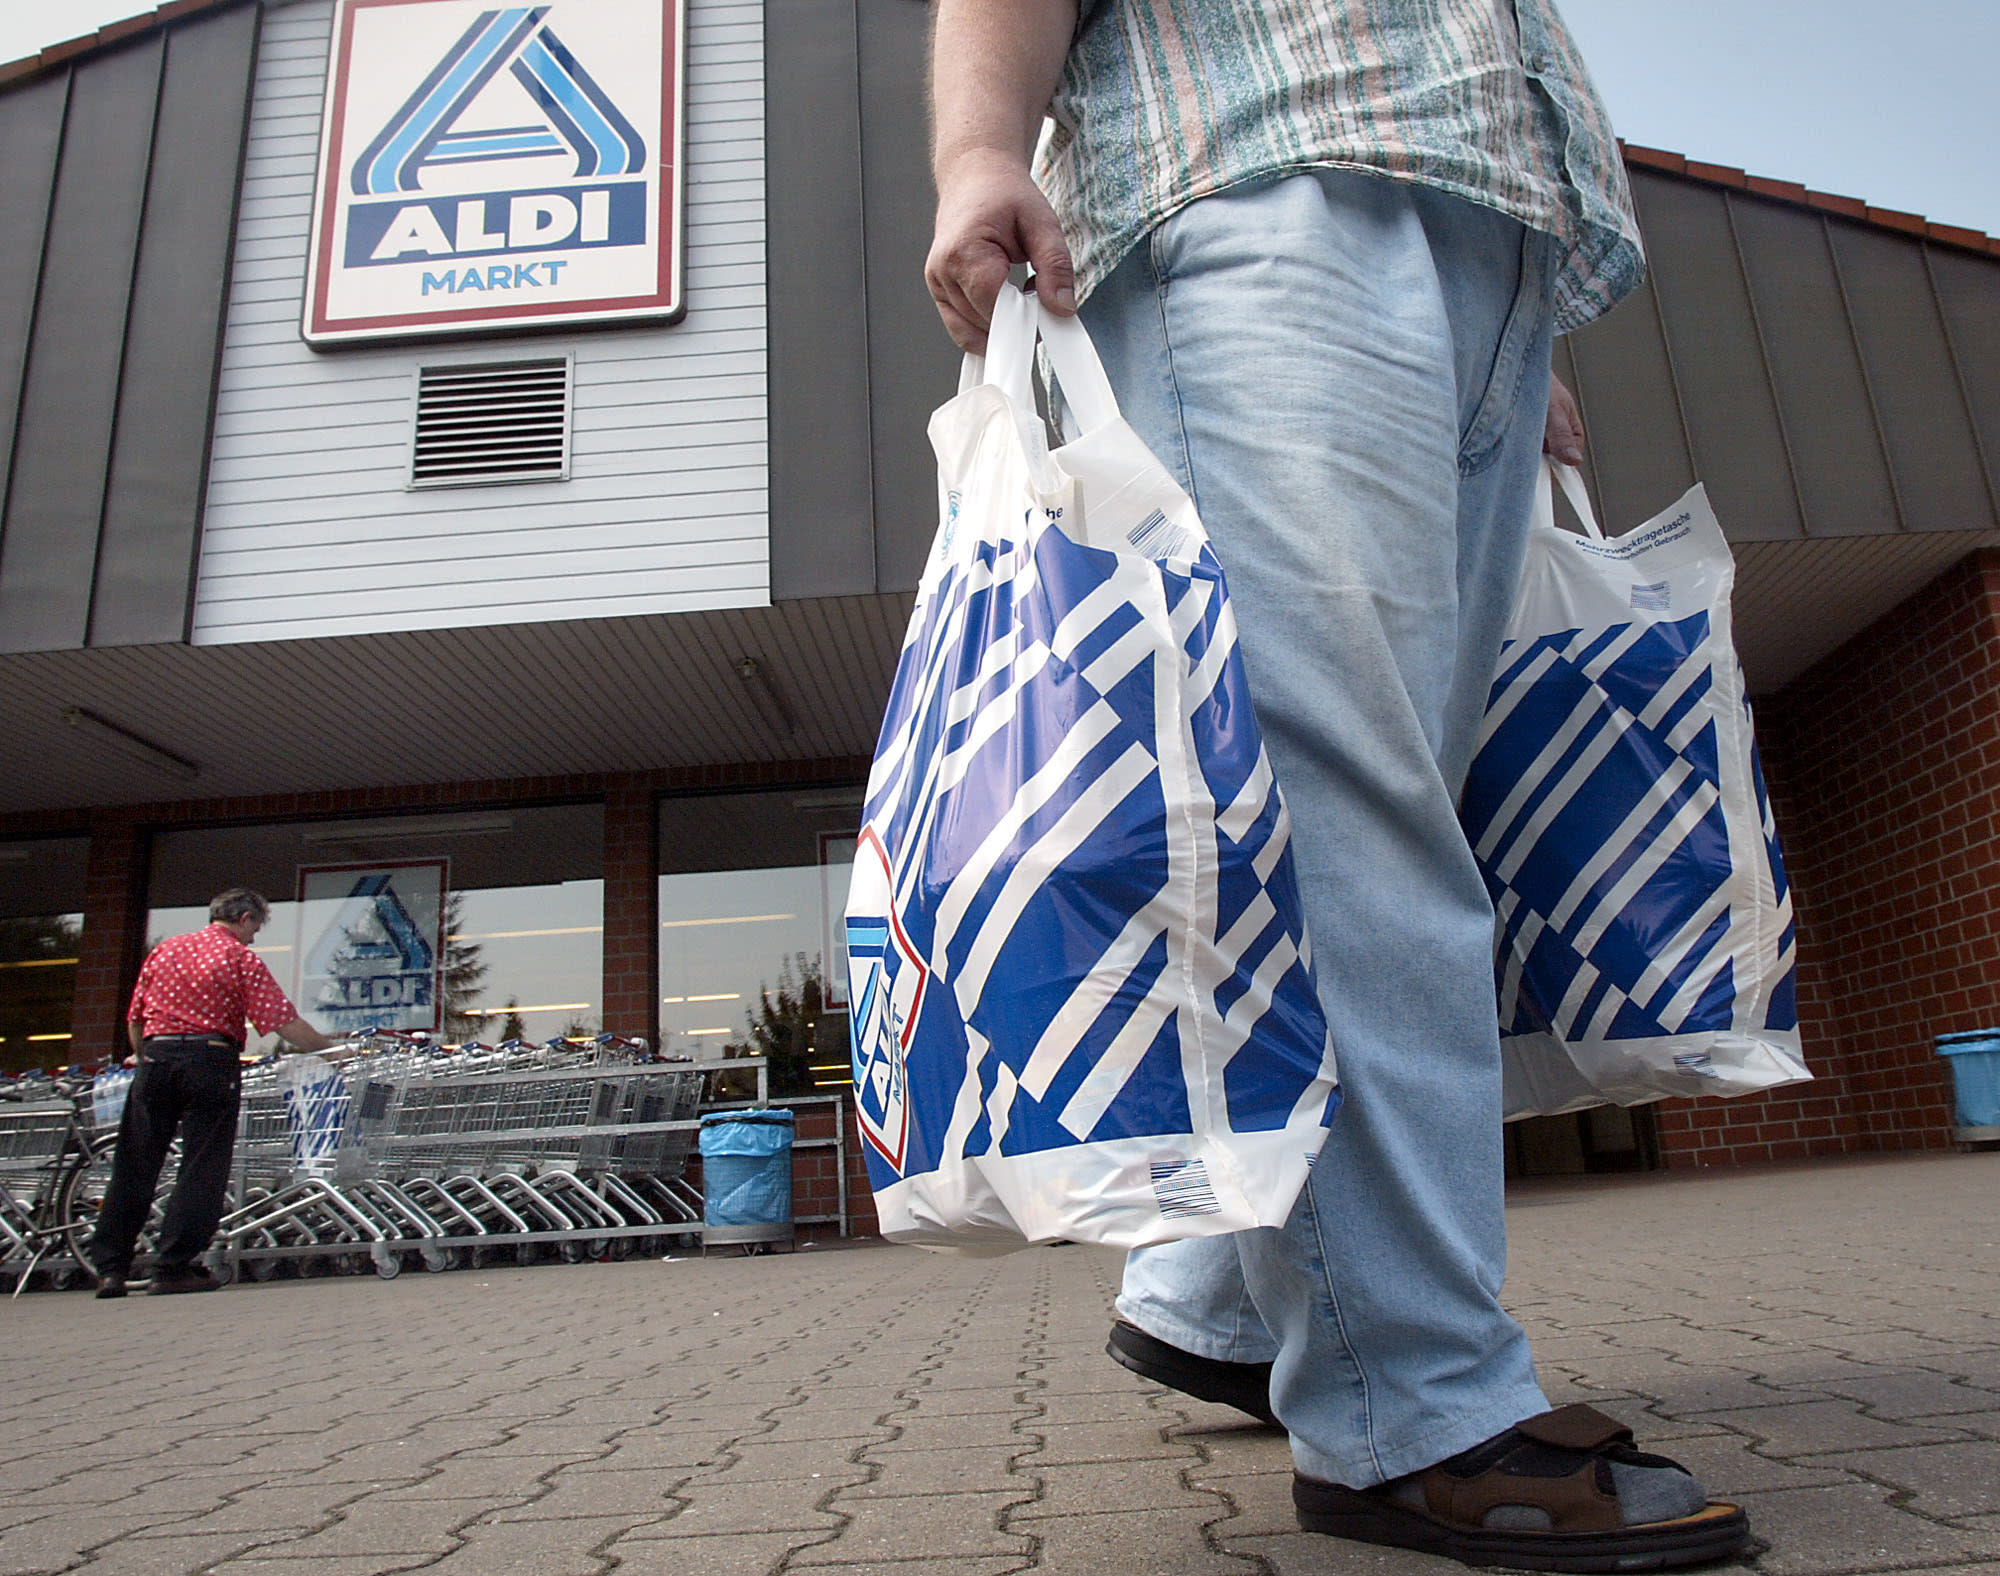 5 reasons unconventional German grocery store Aldi has a huge cult following